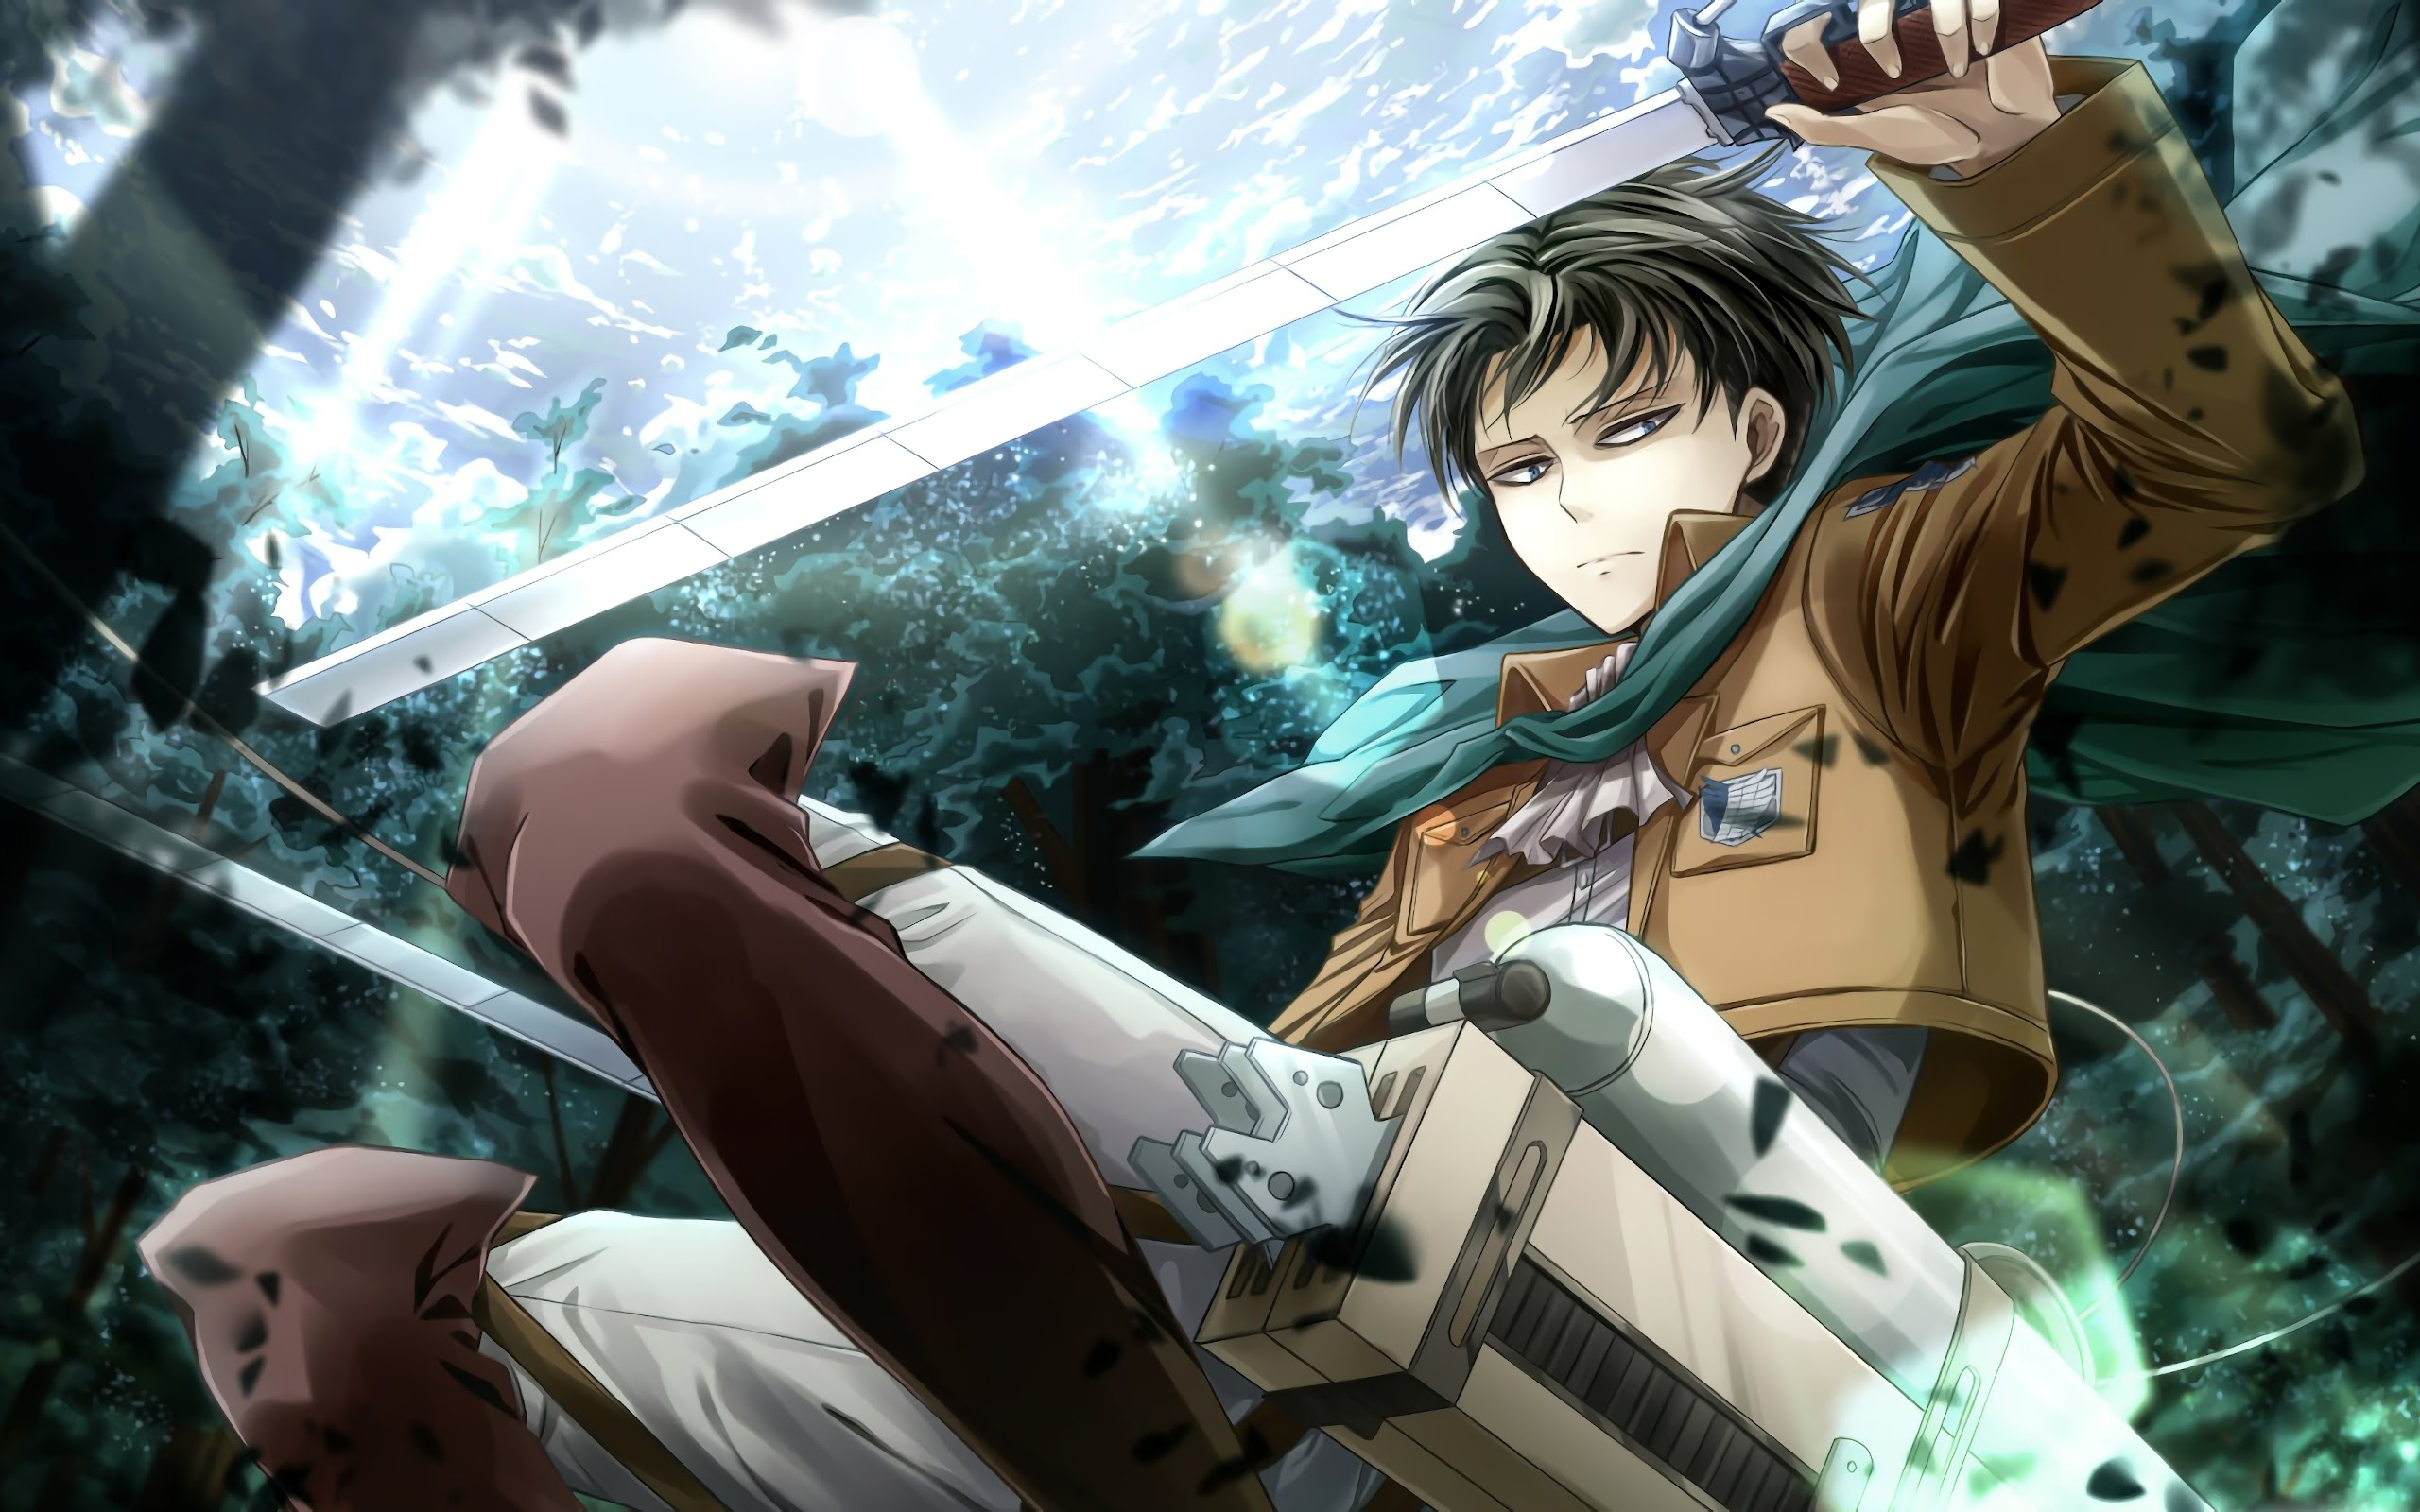 Playlist of my attack on titan wallpapers in 4k. Levi, Attack on Titan, 4K, #61 Wallpaper